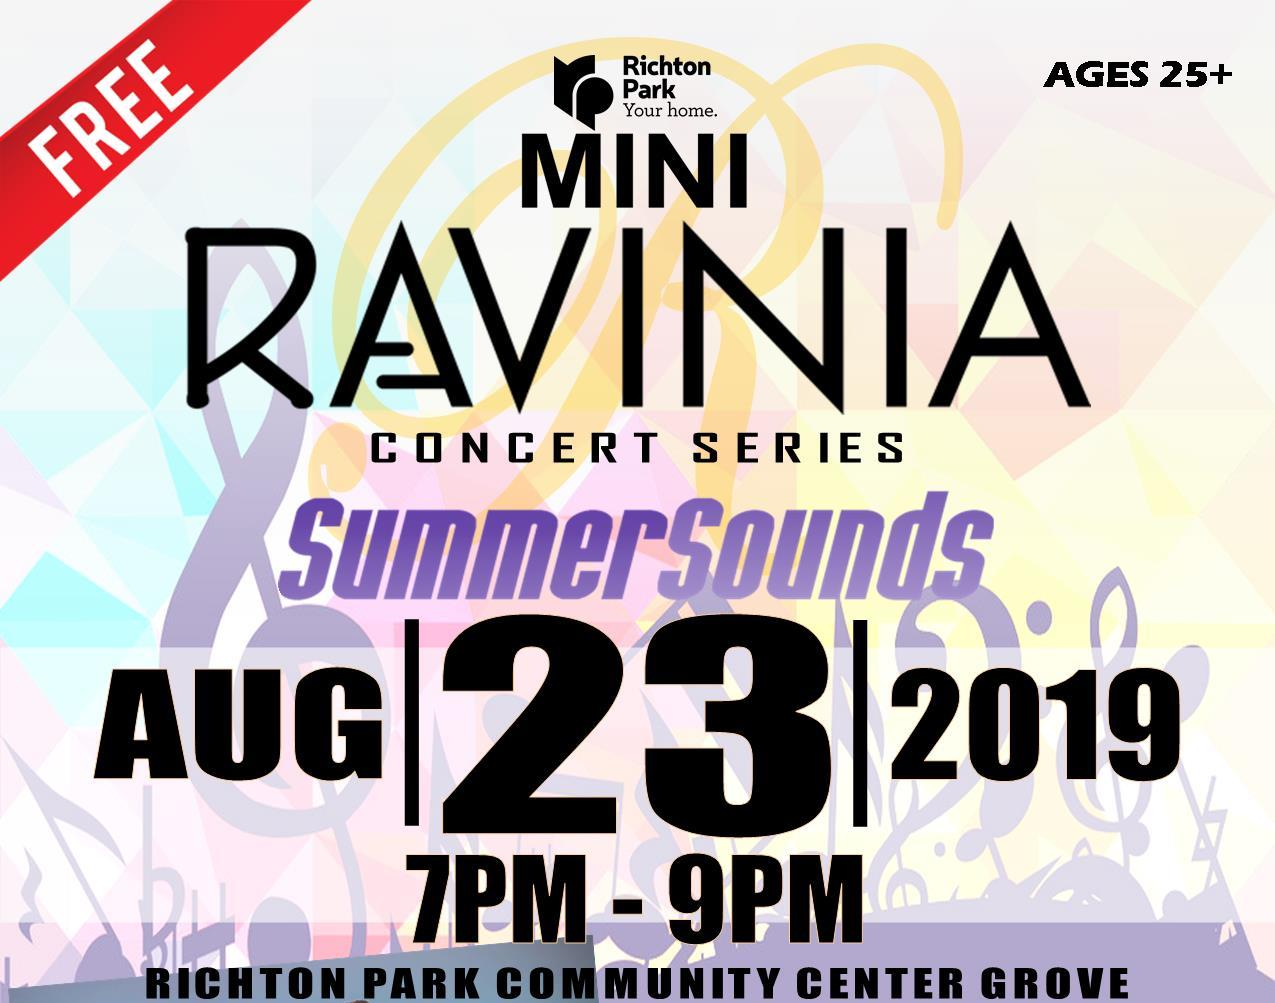 Mini Ravinia Summer 2019 sq